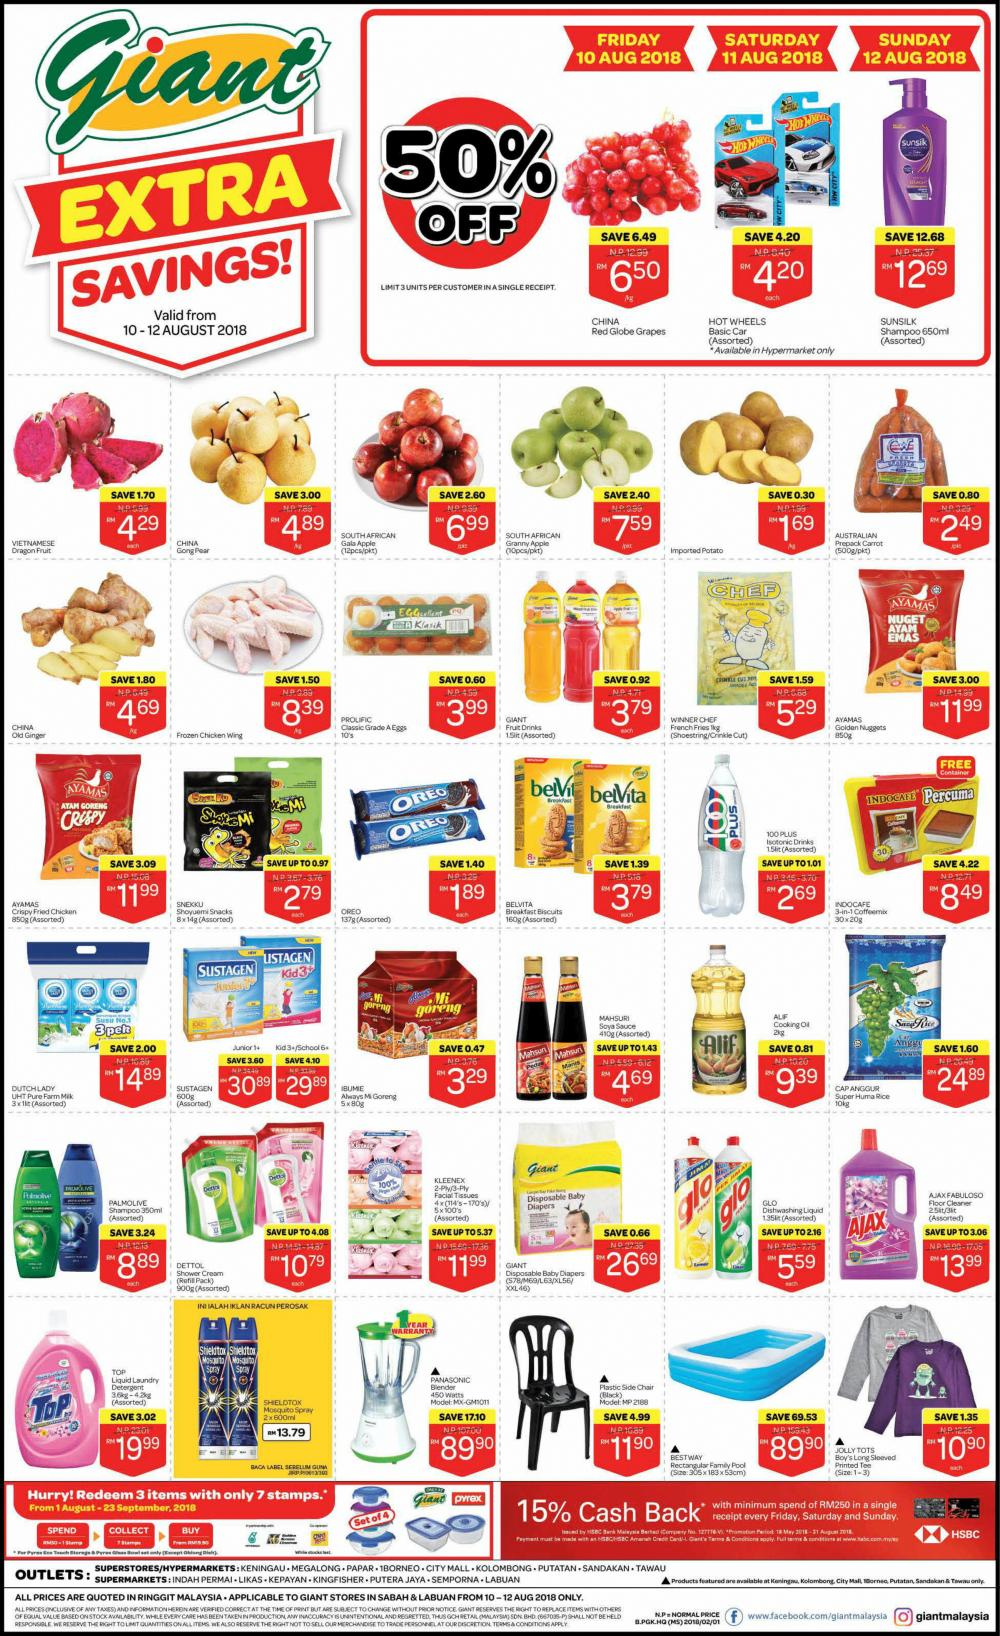 Giant Weekend Promotion at Sabah and Labuan (10 August 2018 - 12 August 2018)